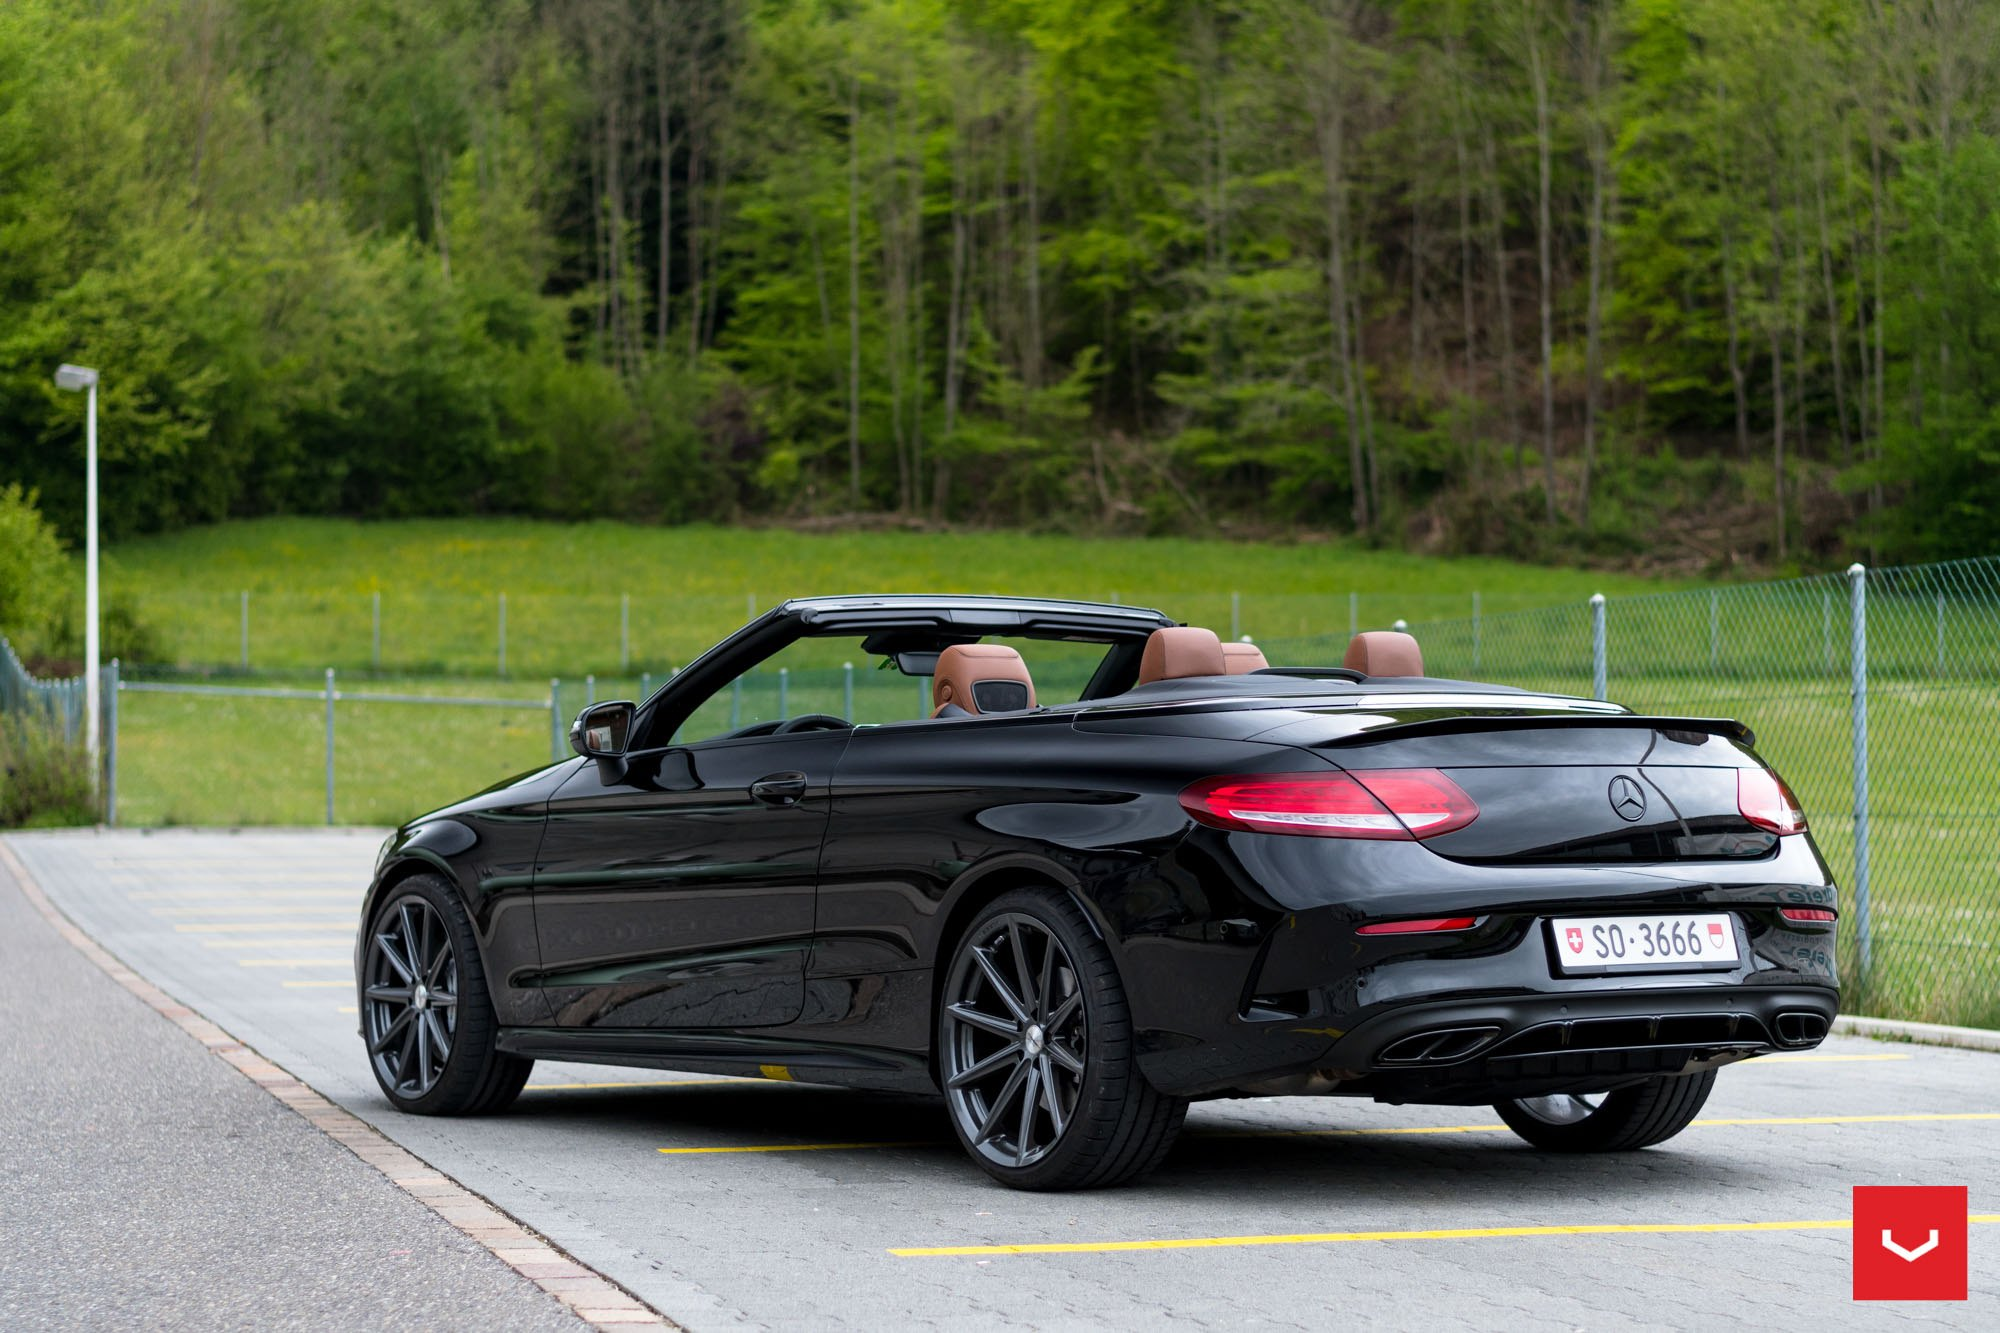 Stylish aftermarket parts on stunning convertible mercedes for Mercedes benz aftermarket performance parts